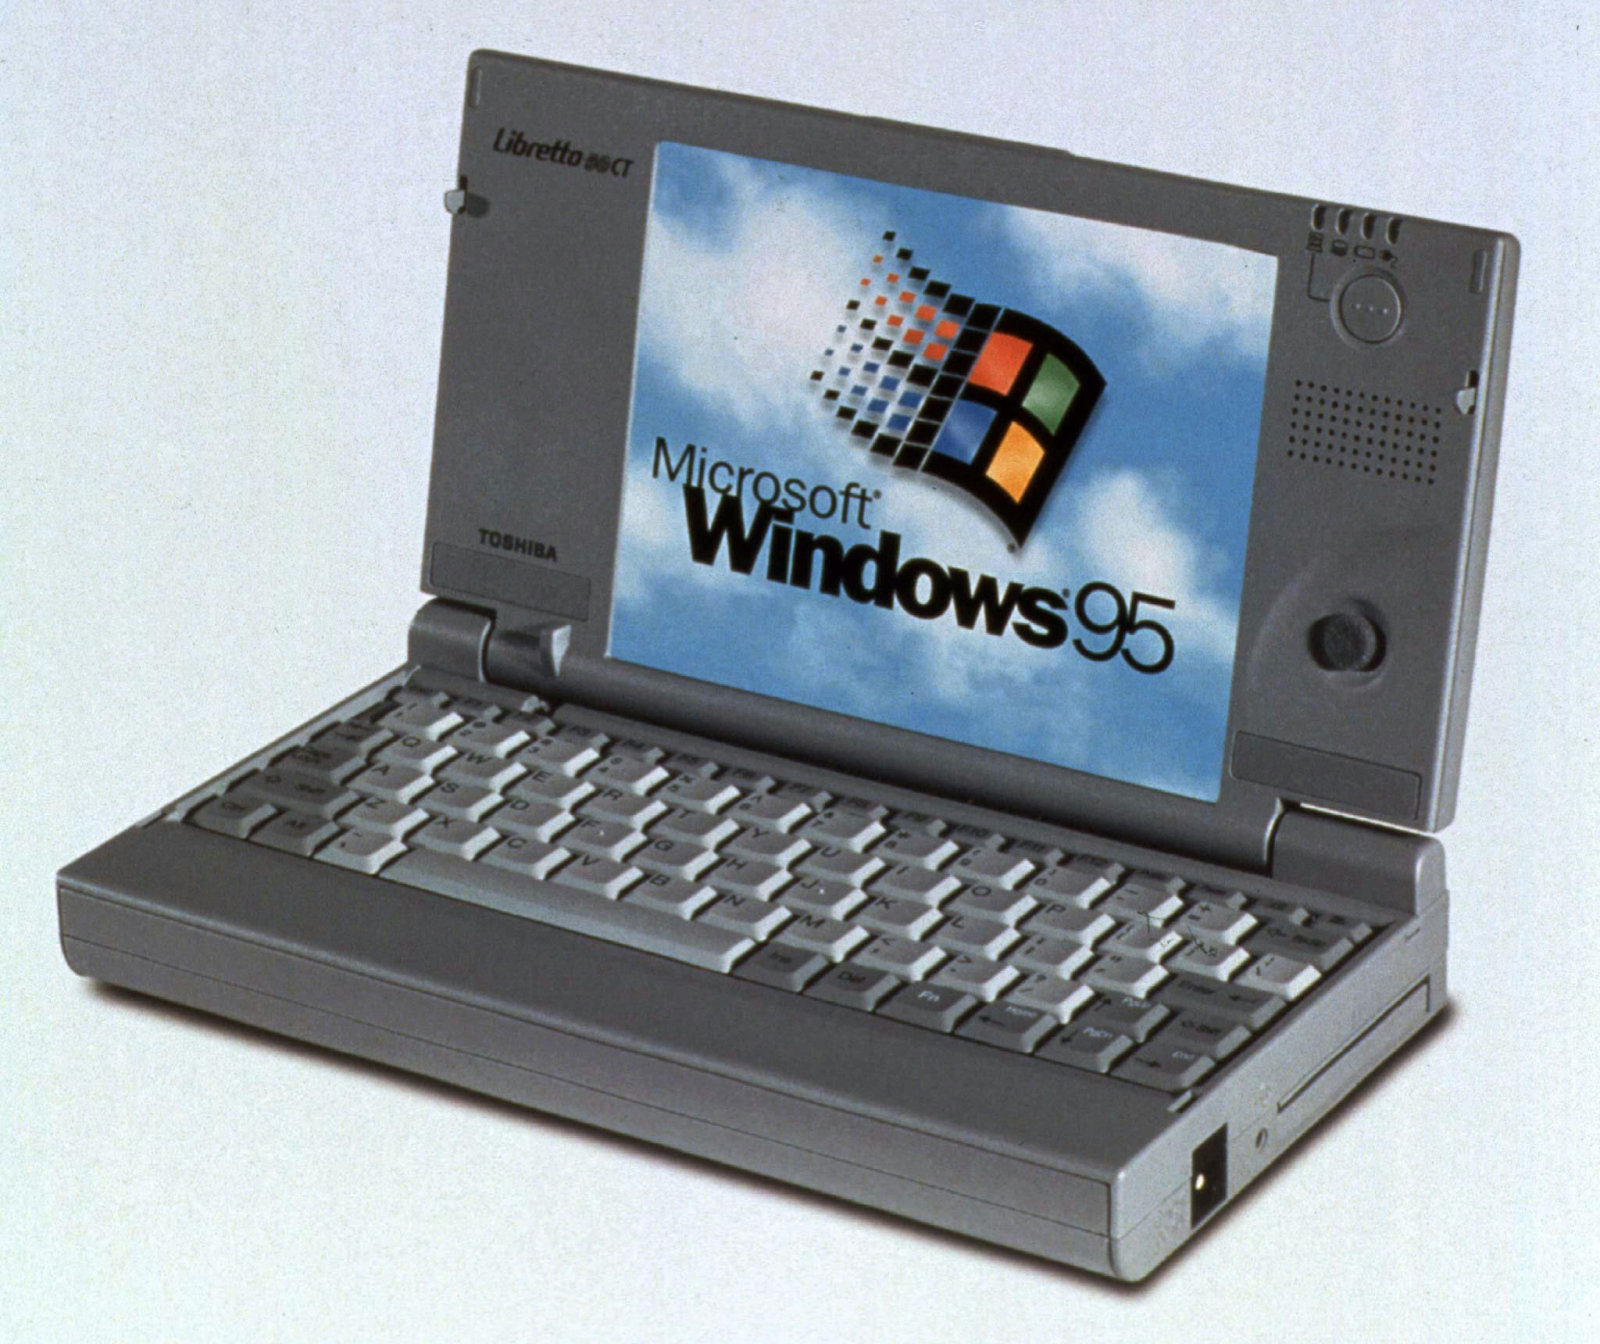 Toshiba's first mini-laptop, the Libretto 50CT was introduced at the Spring Comdex Show at the Georgia World Congress Center on June 2. The mini-notebook with a 75MHz Pentium processor, Windows 95 and a 810 million byte hard drive is expected to retail at $1,999.